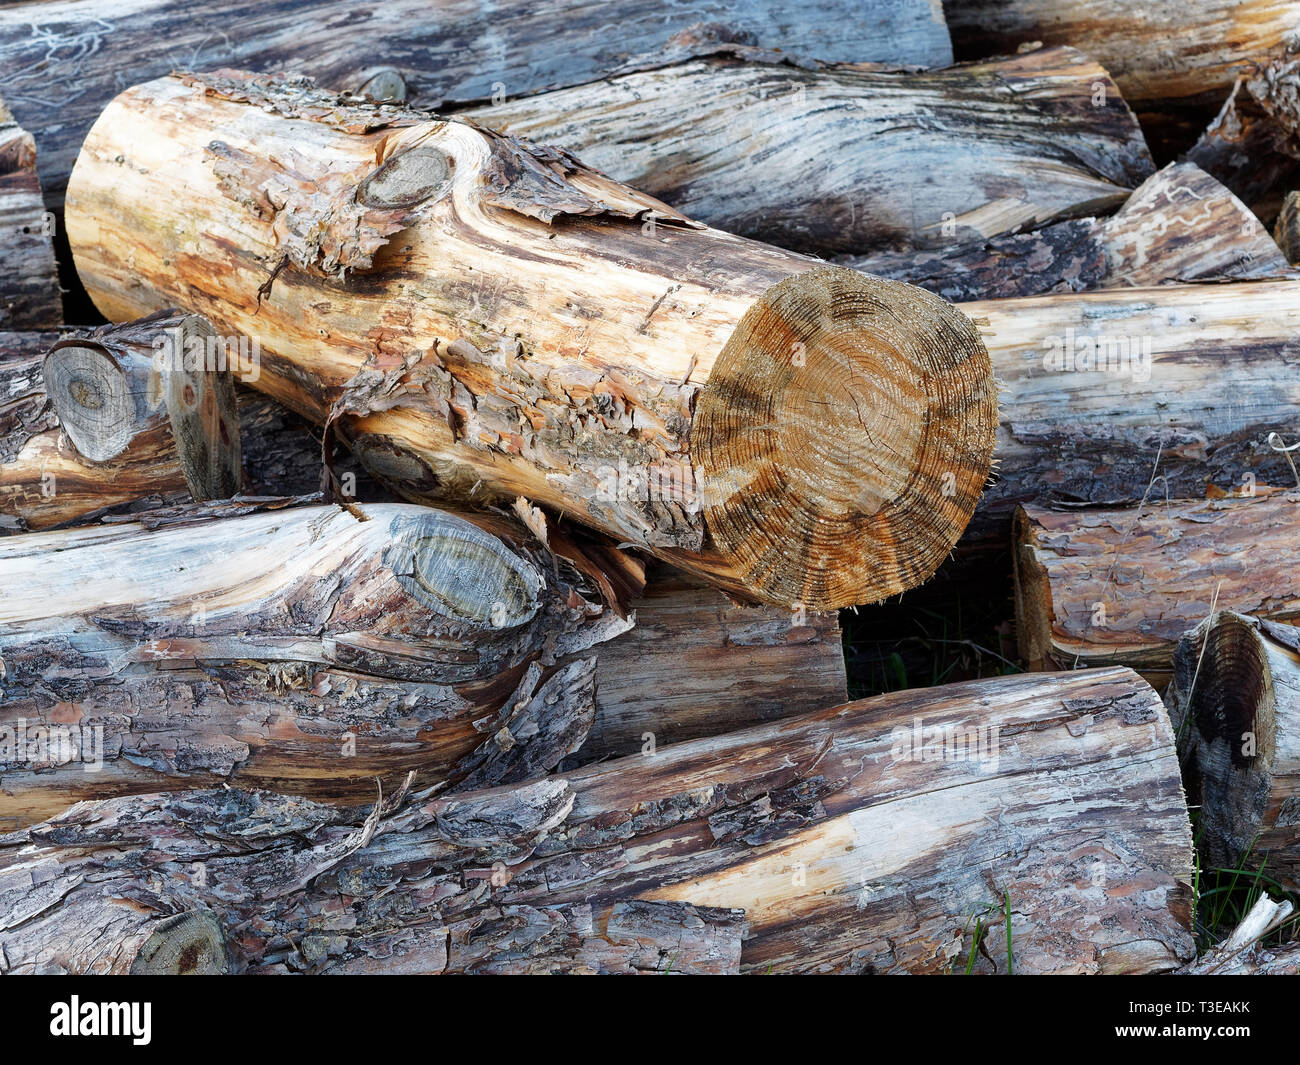 Close Up of haphazardly stacked pile of fire wood - Stock Image